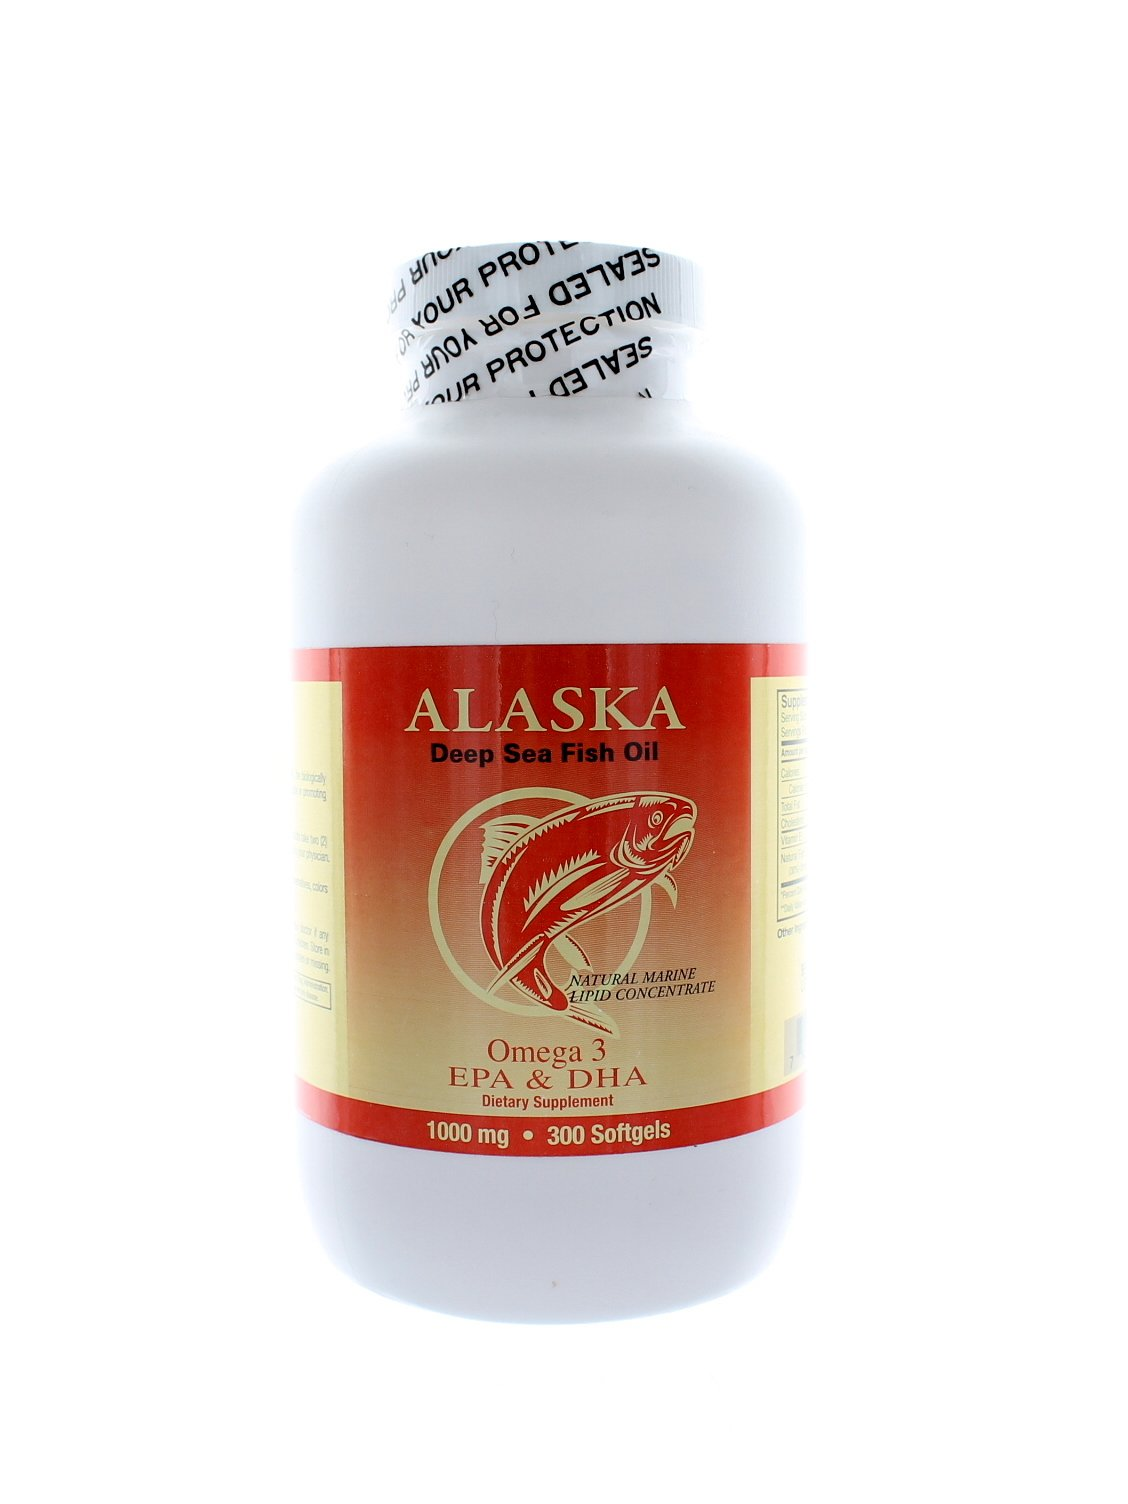 NCB Alaska Deep Sea Fish Oil, Omega 3 1000mg 300 Softgels by NCB (Image #1)